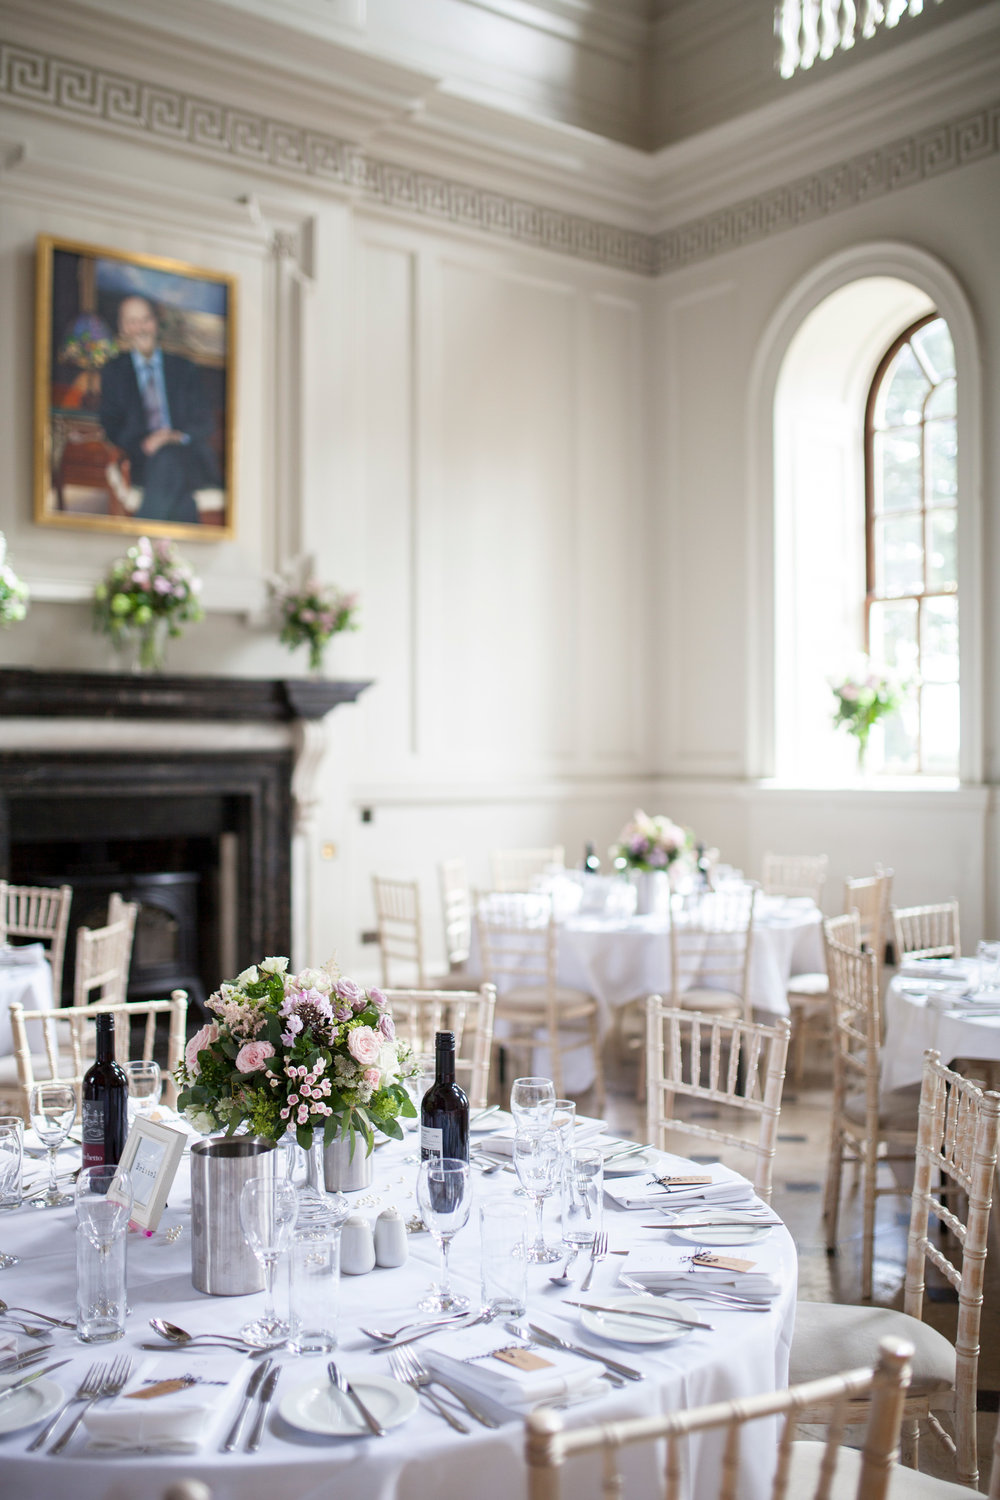 Chicheley Hall, White Wedding, Wedding Venue, Table Scape,